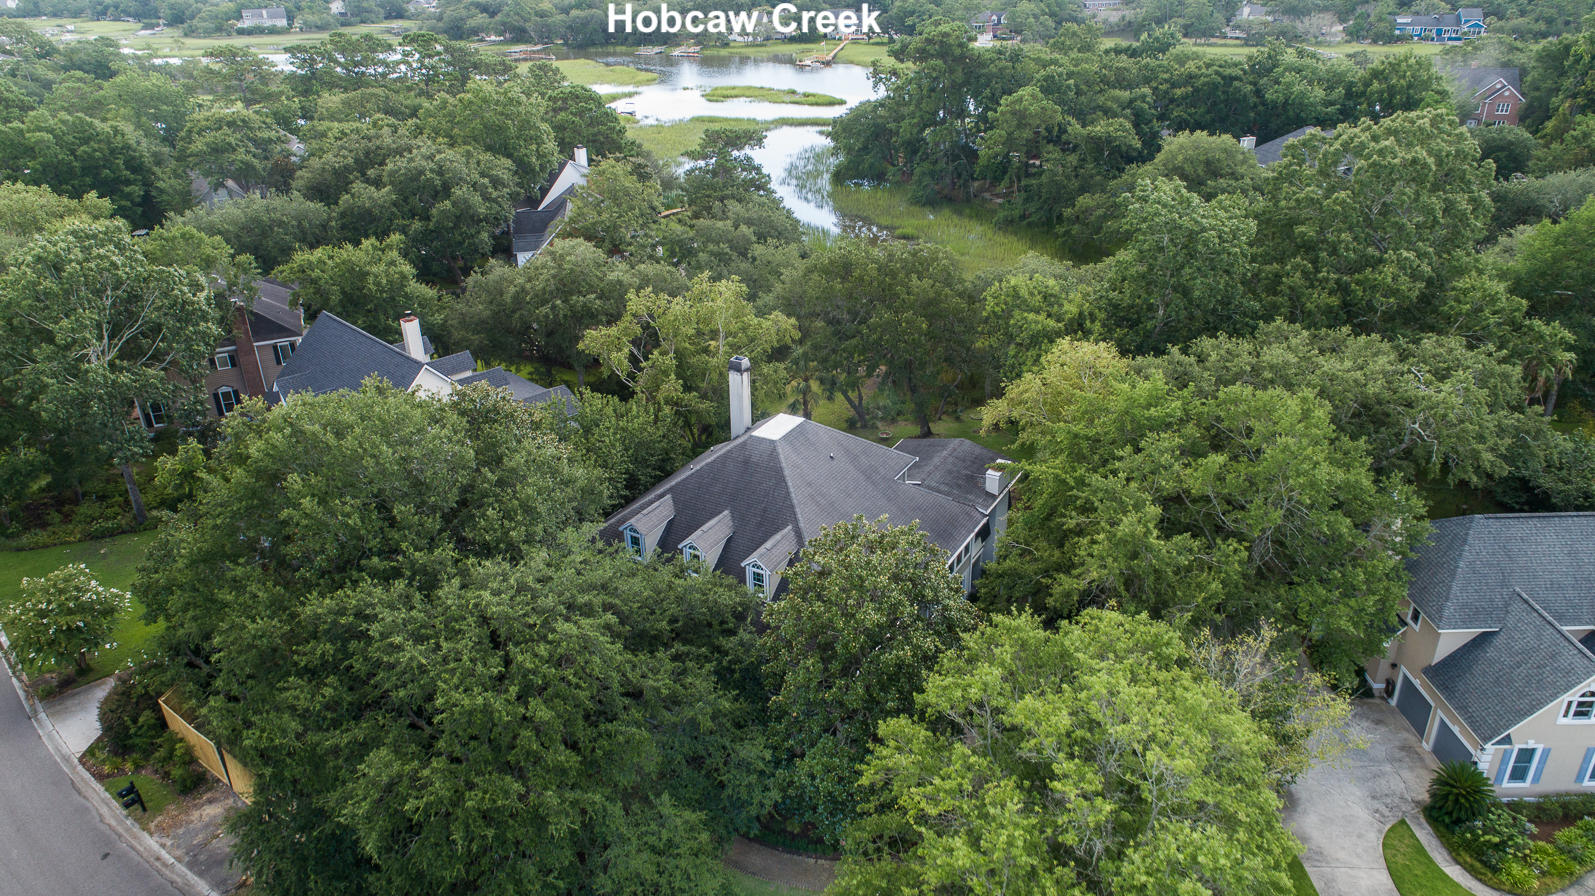 Hobcaw Creek Plantation Homes For Sale - 638 Hobcaw Bluff, Mount Pleasant, SC - 63